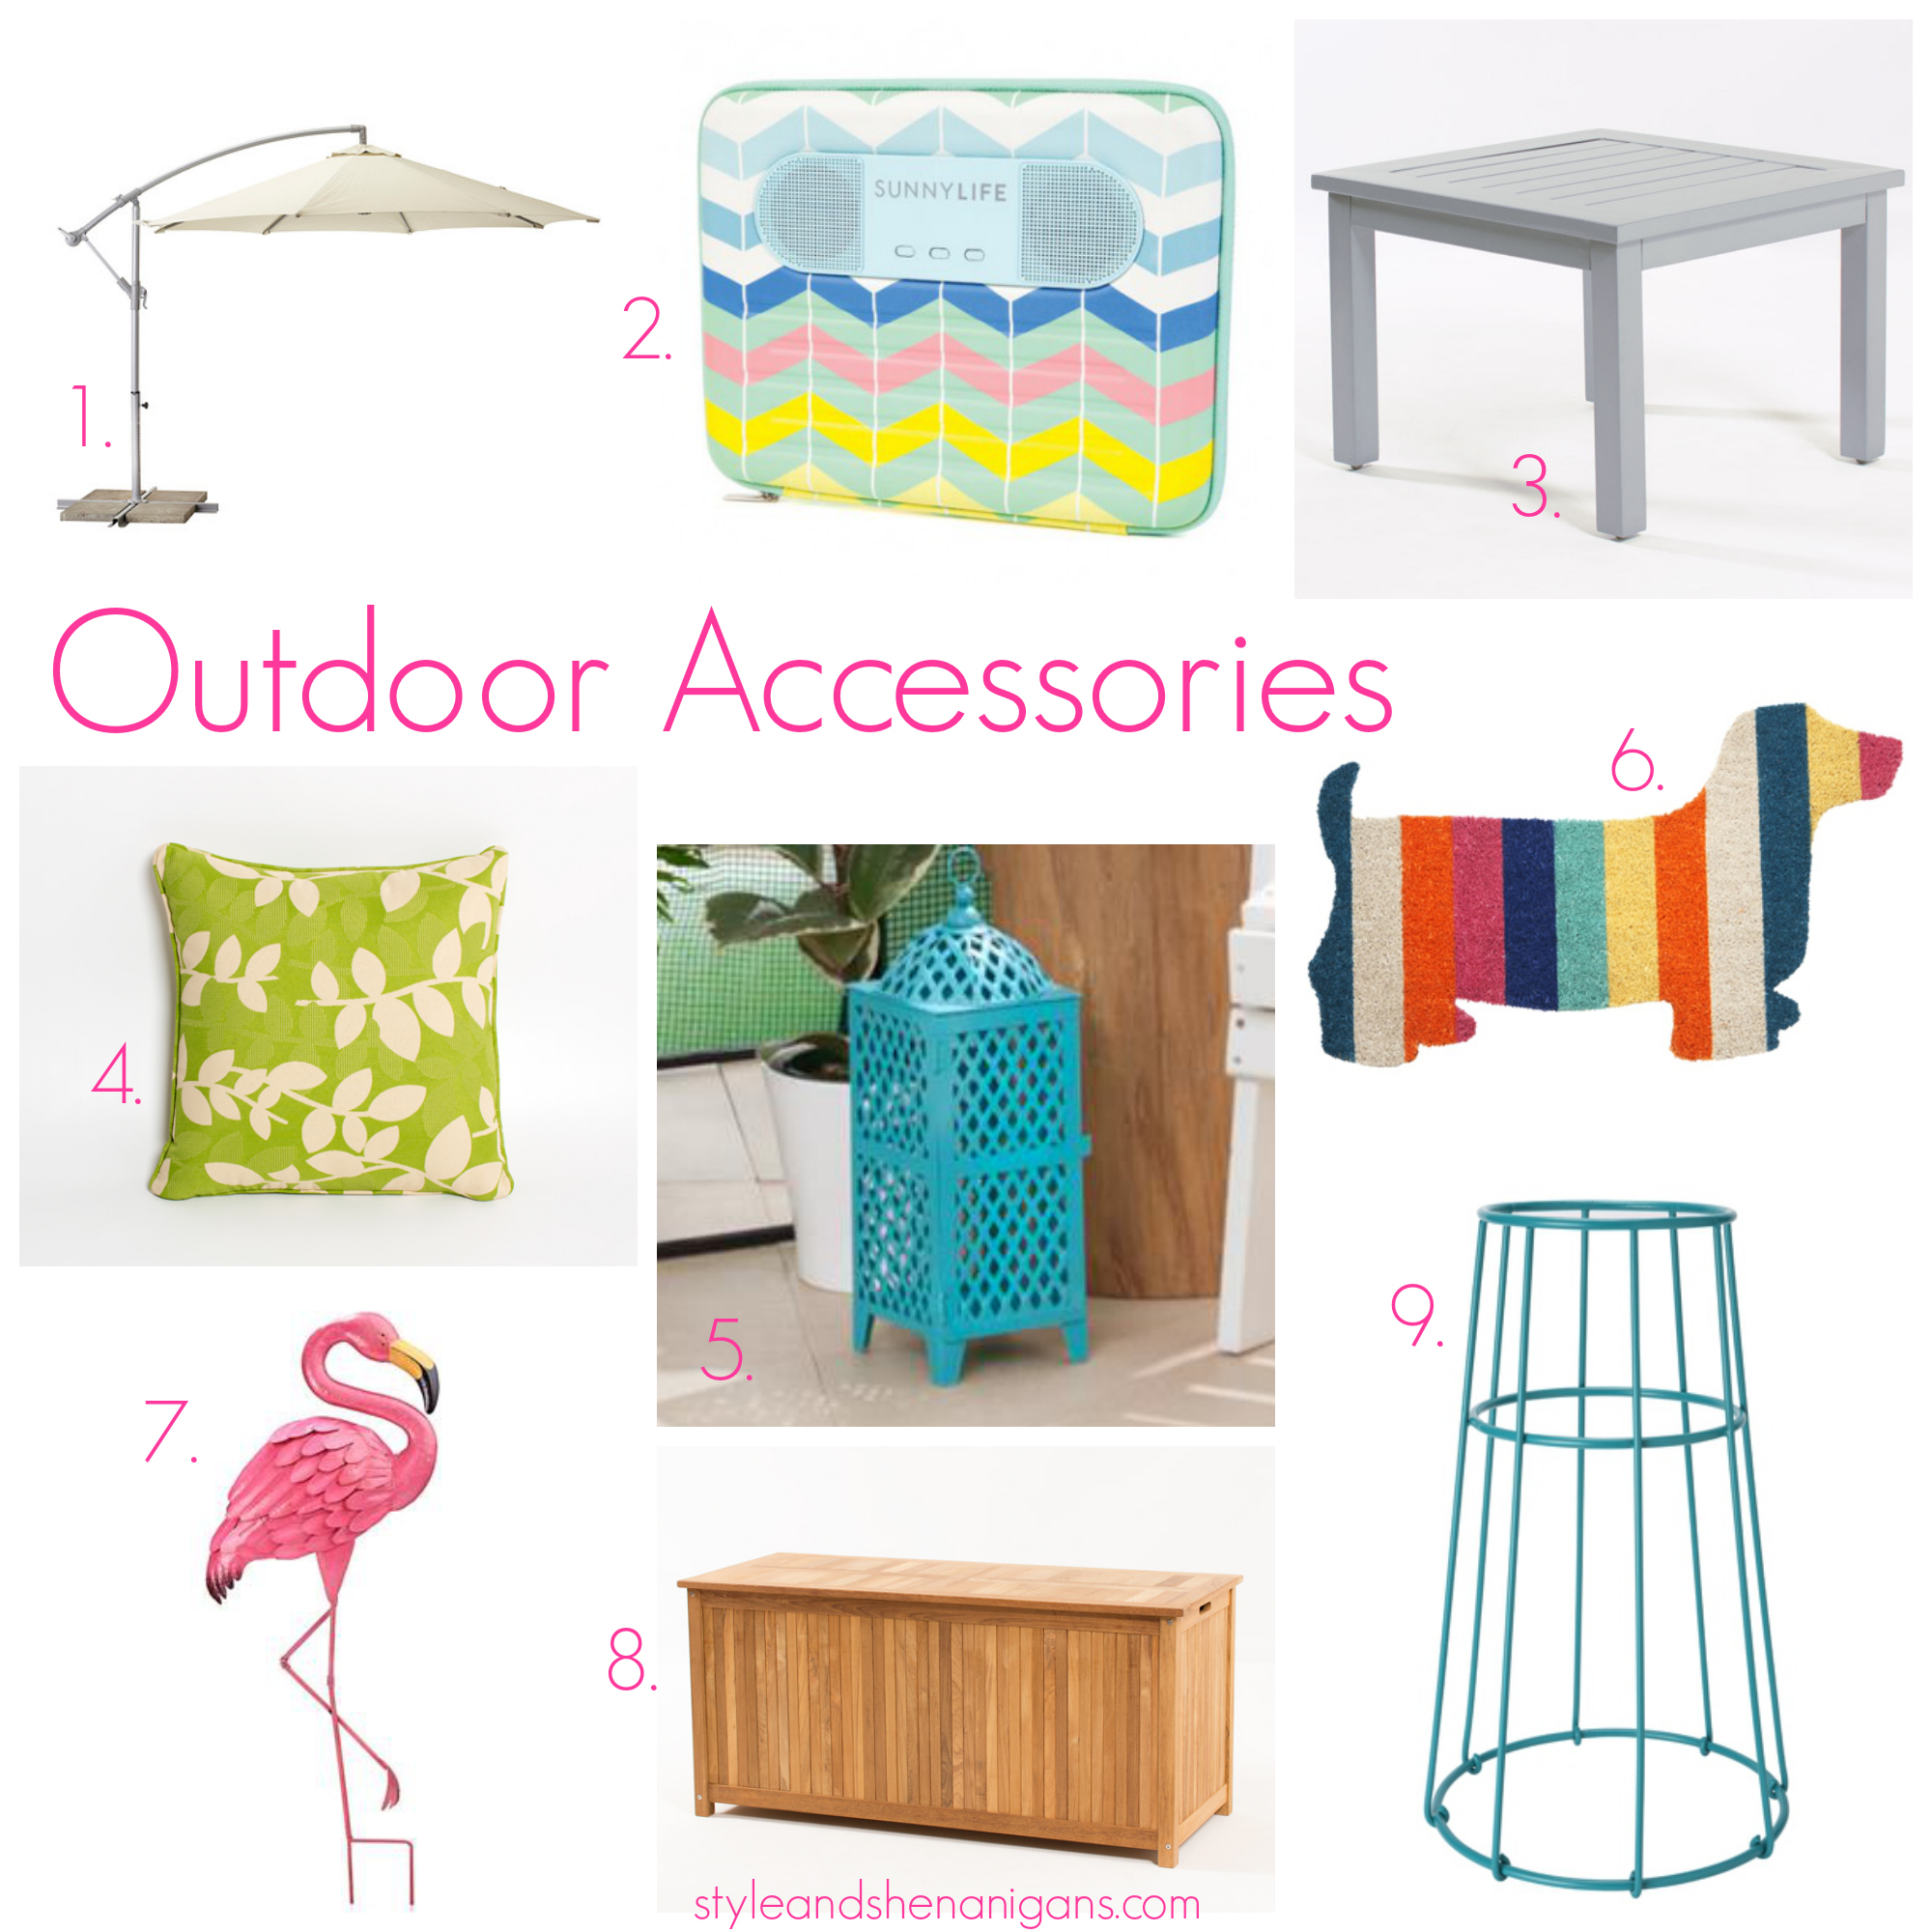 Accessories for garden furniture style and shenanigans outdoor accessories GLLMNXX